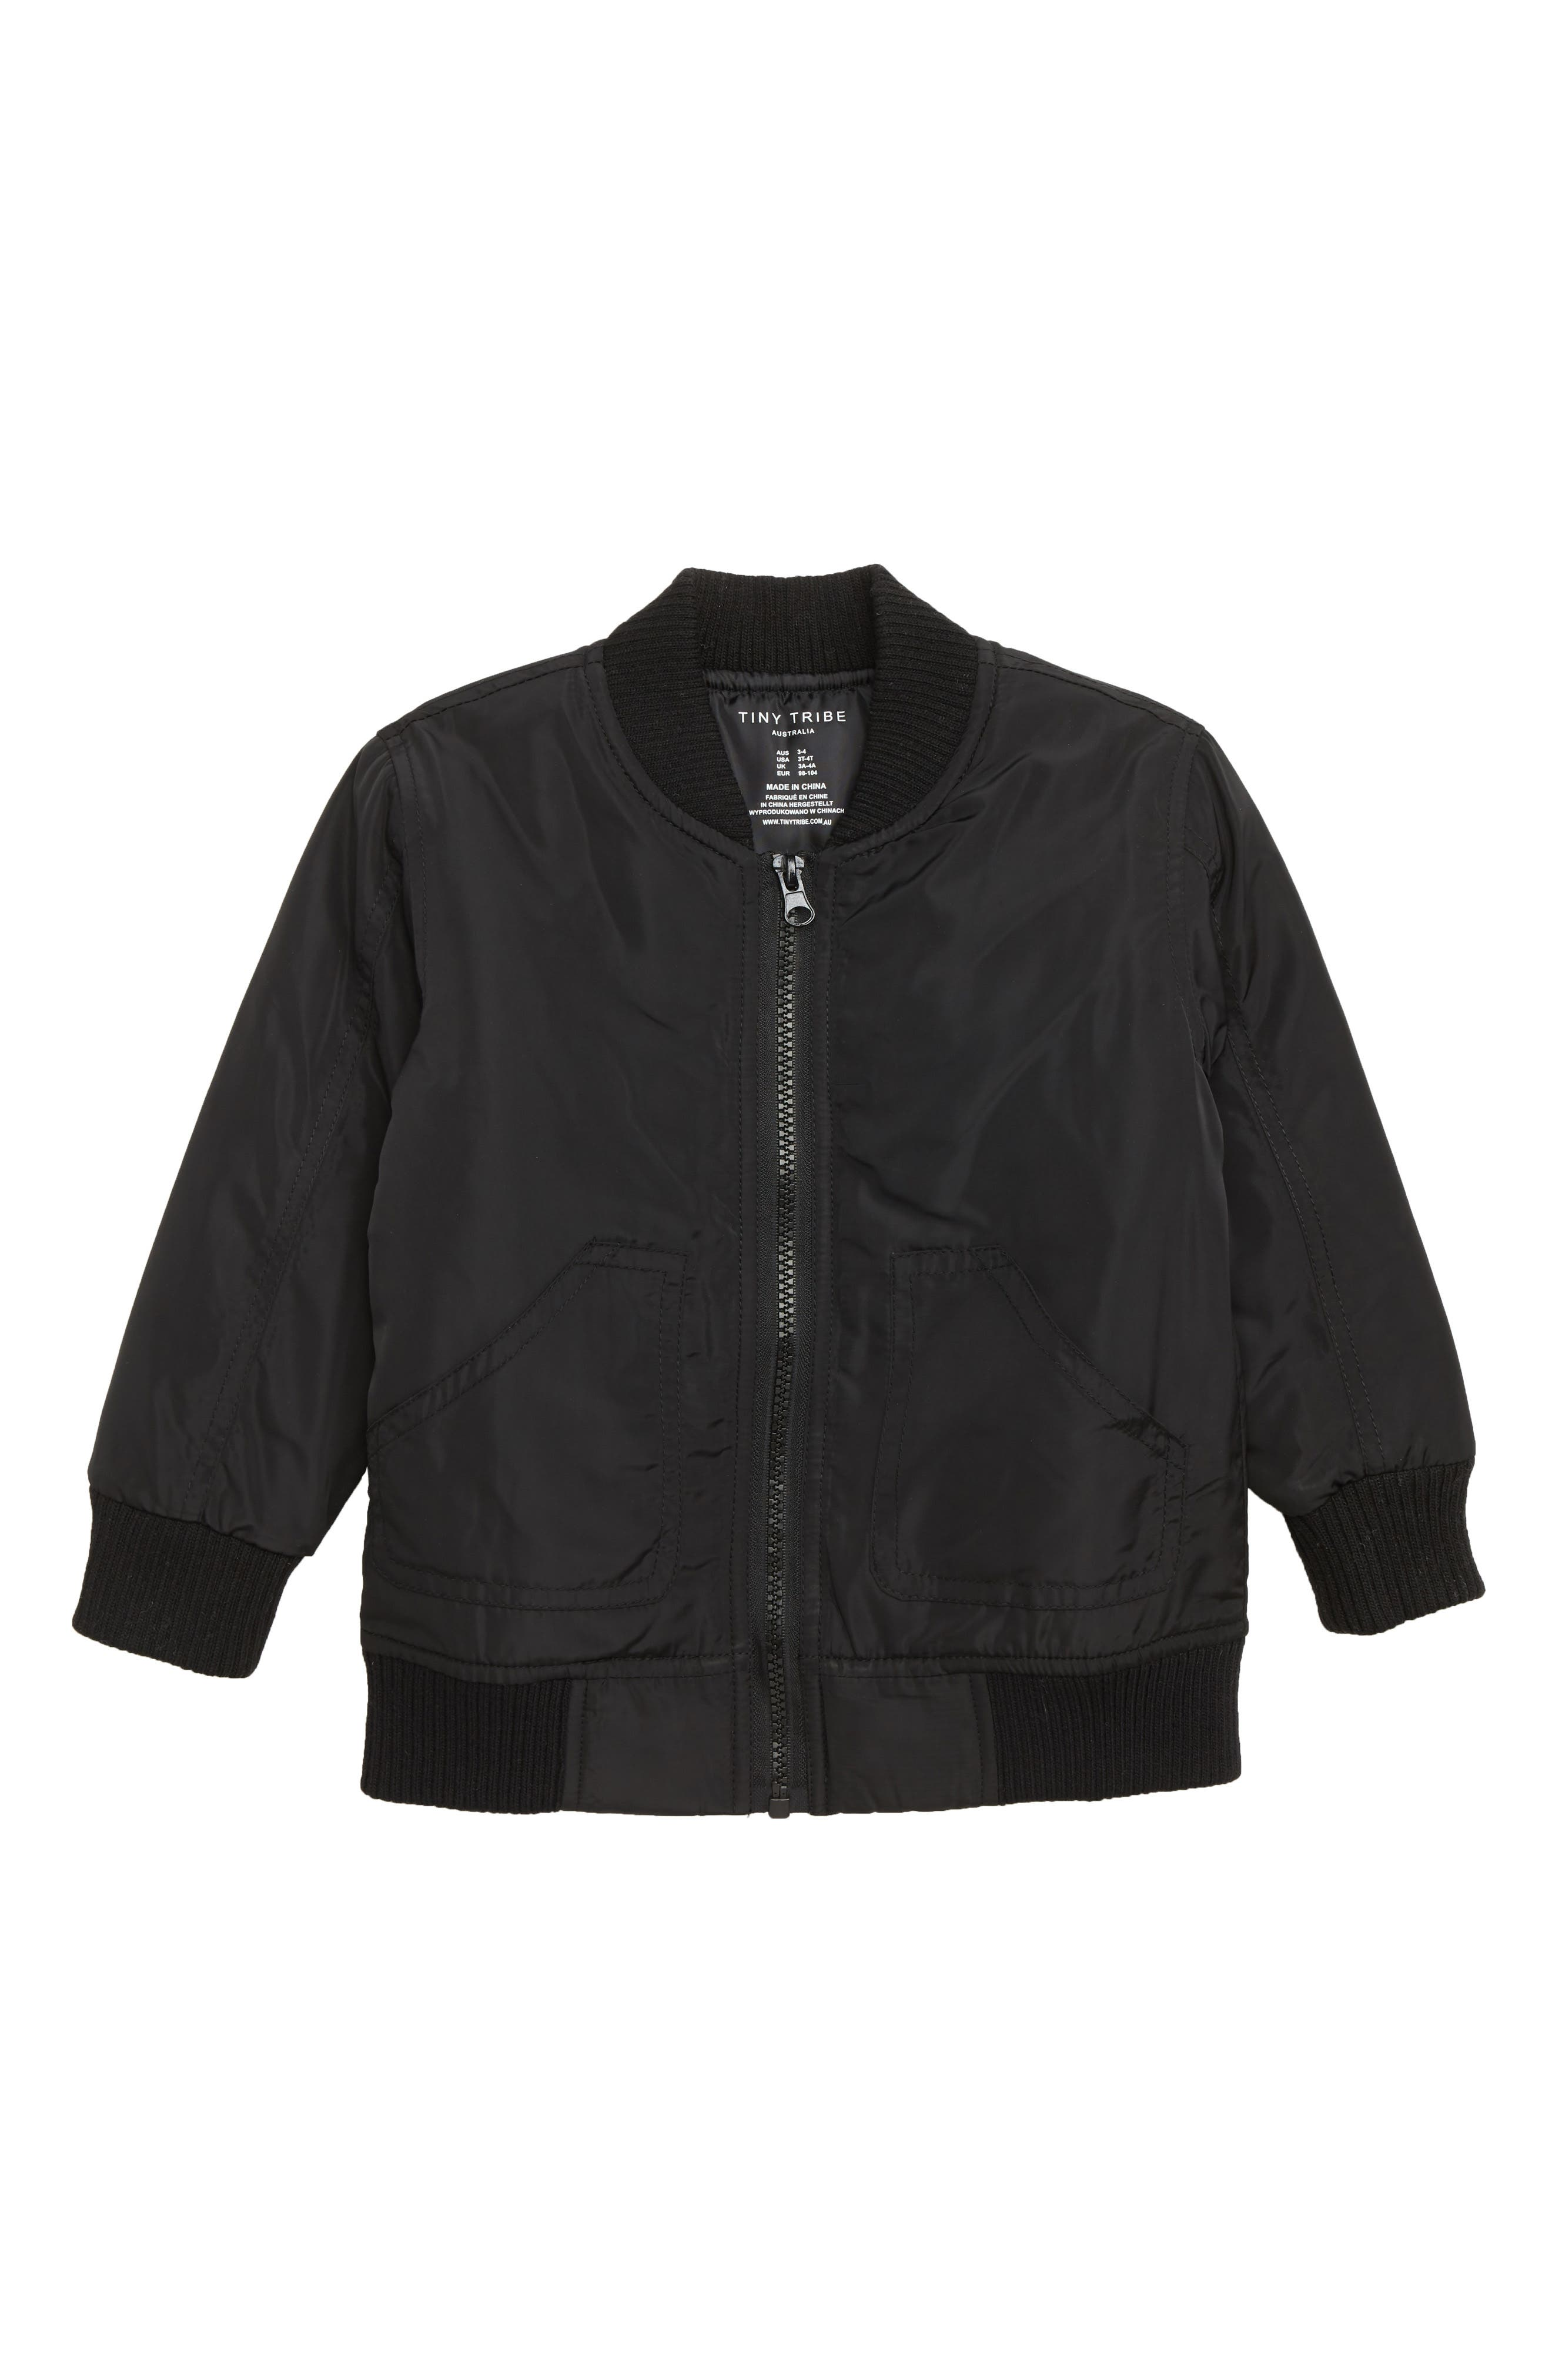 Laters Bomber Jacket,                         Main,                         color, BLACK